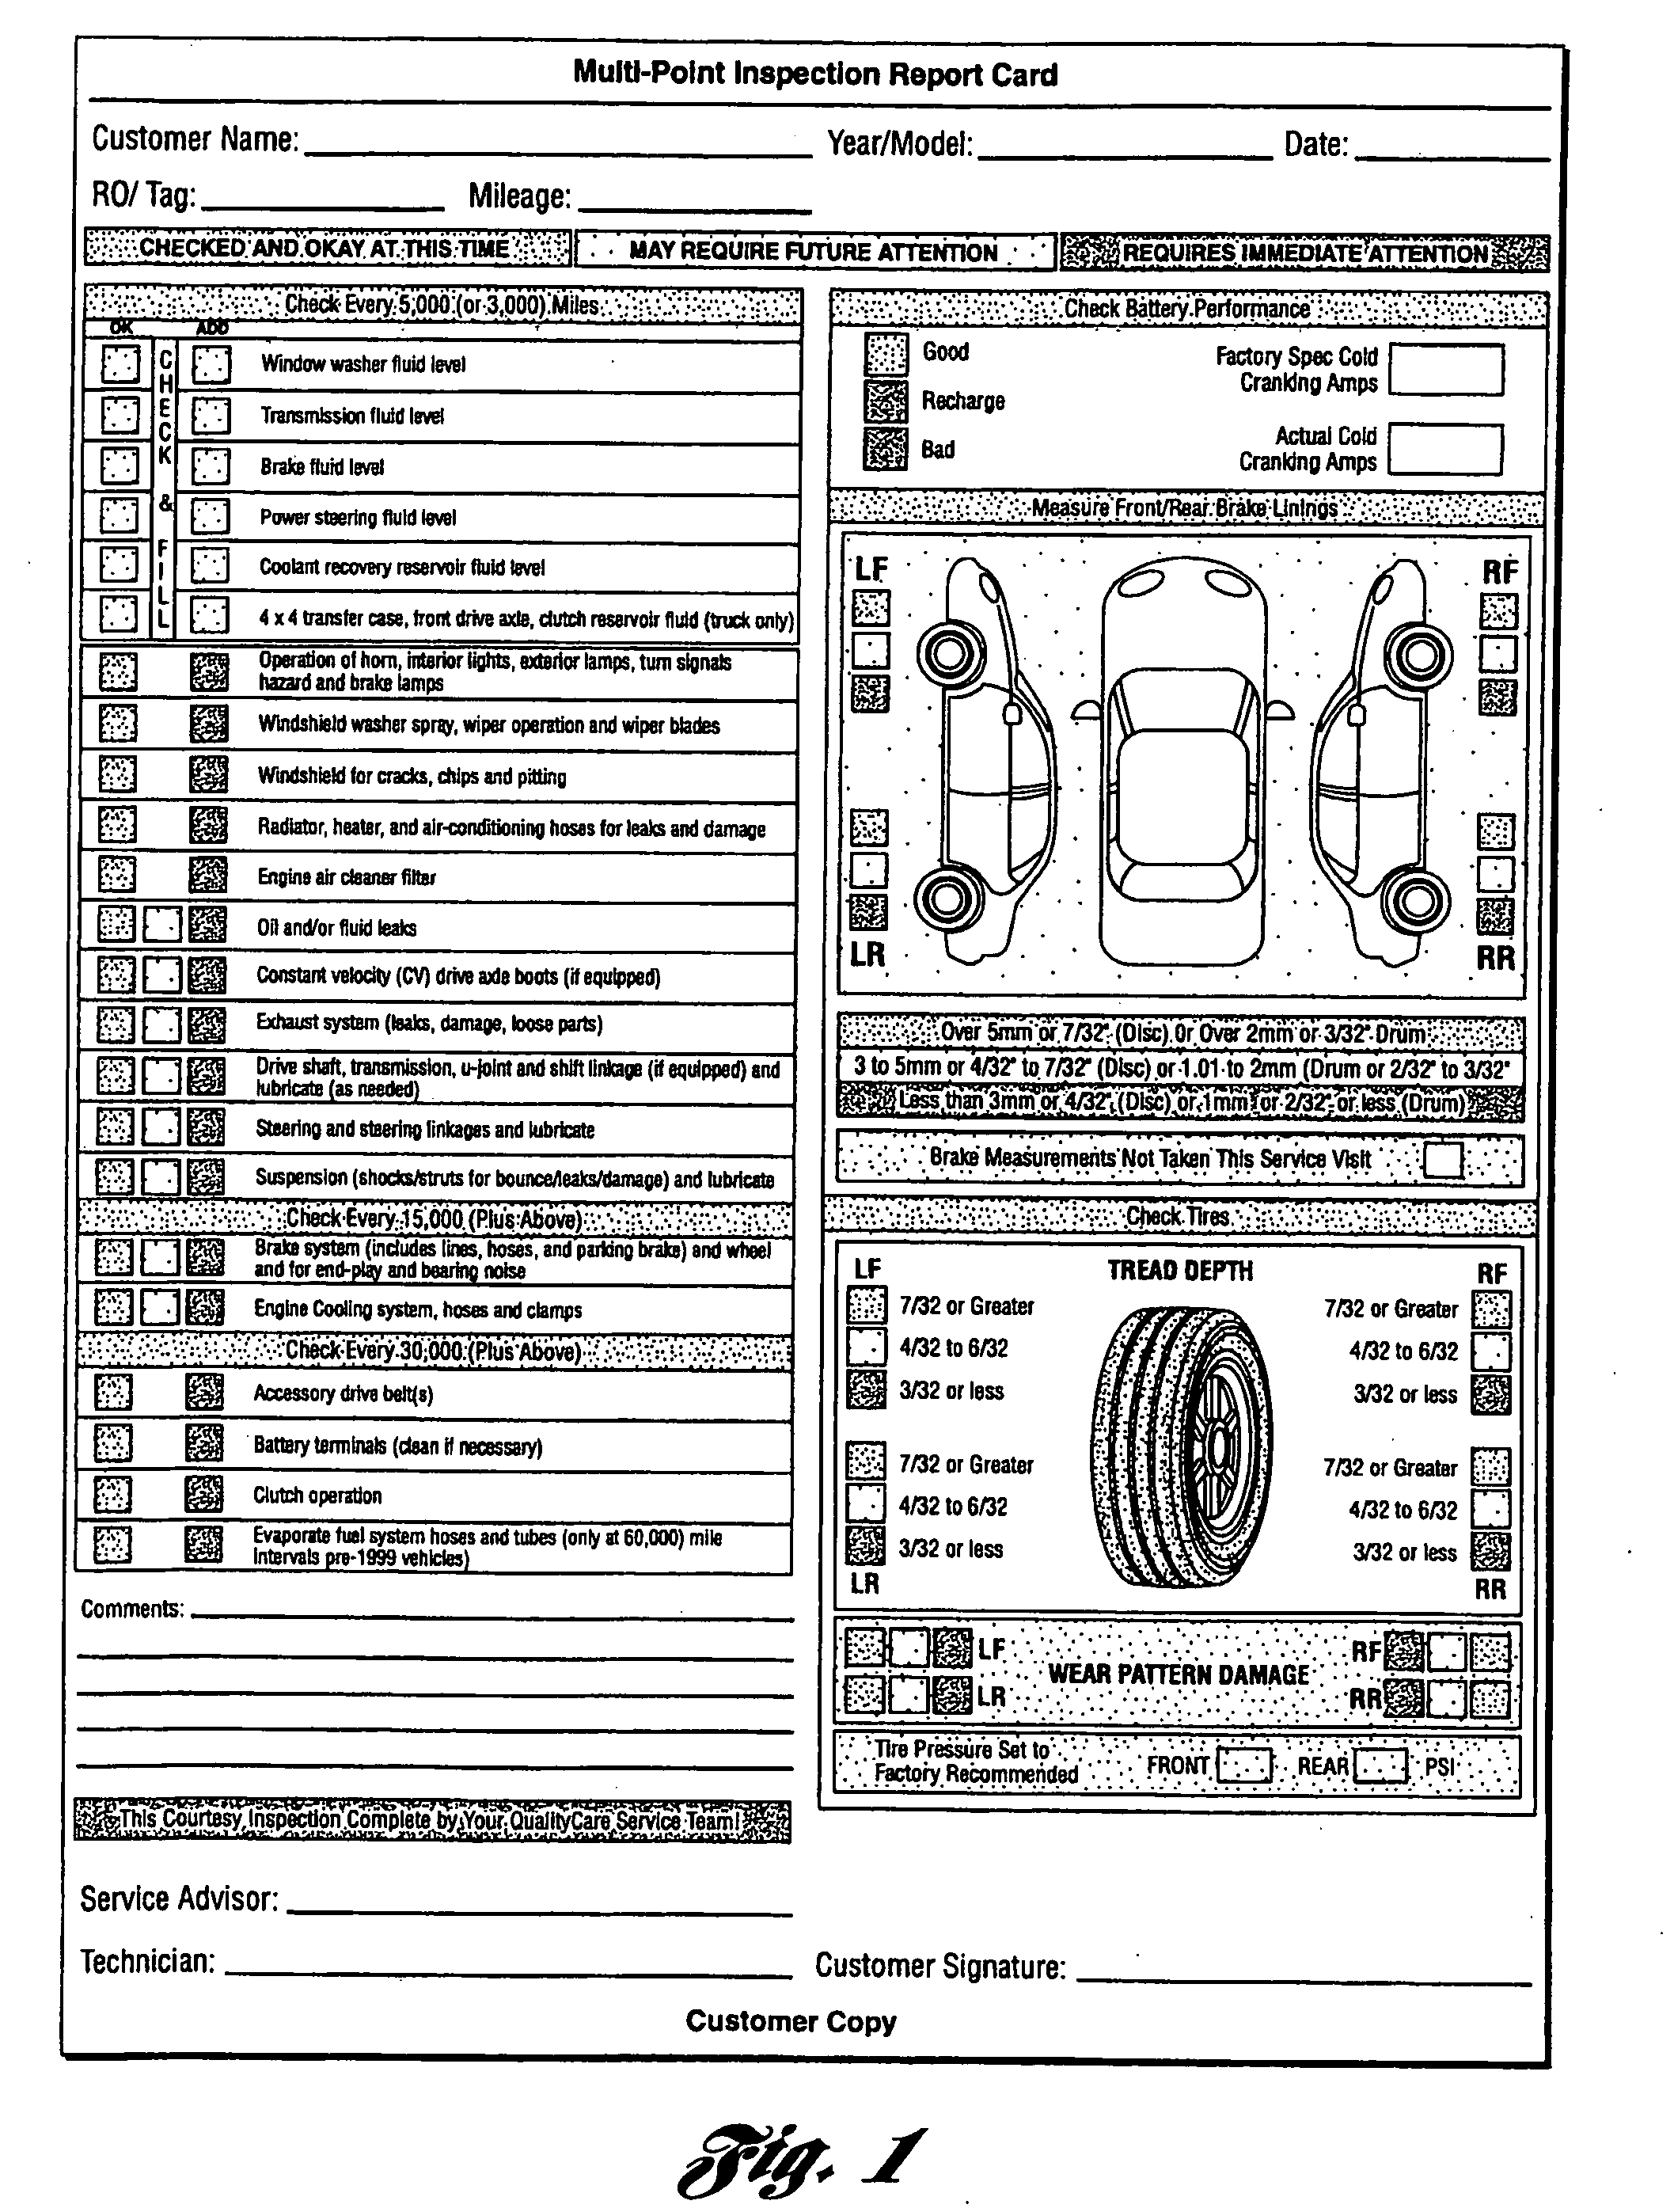 Multi Point Inspection Report Card As Recommended By Ford